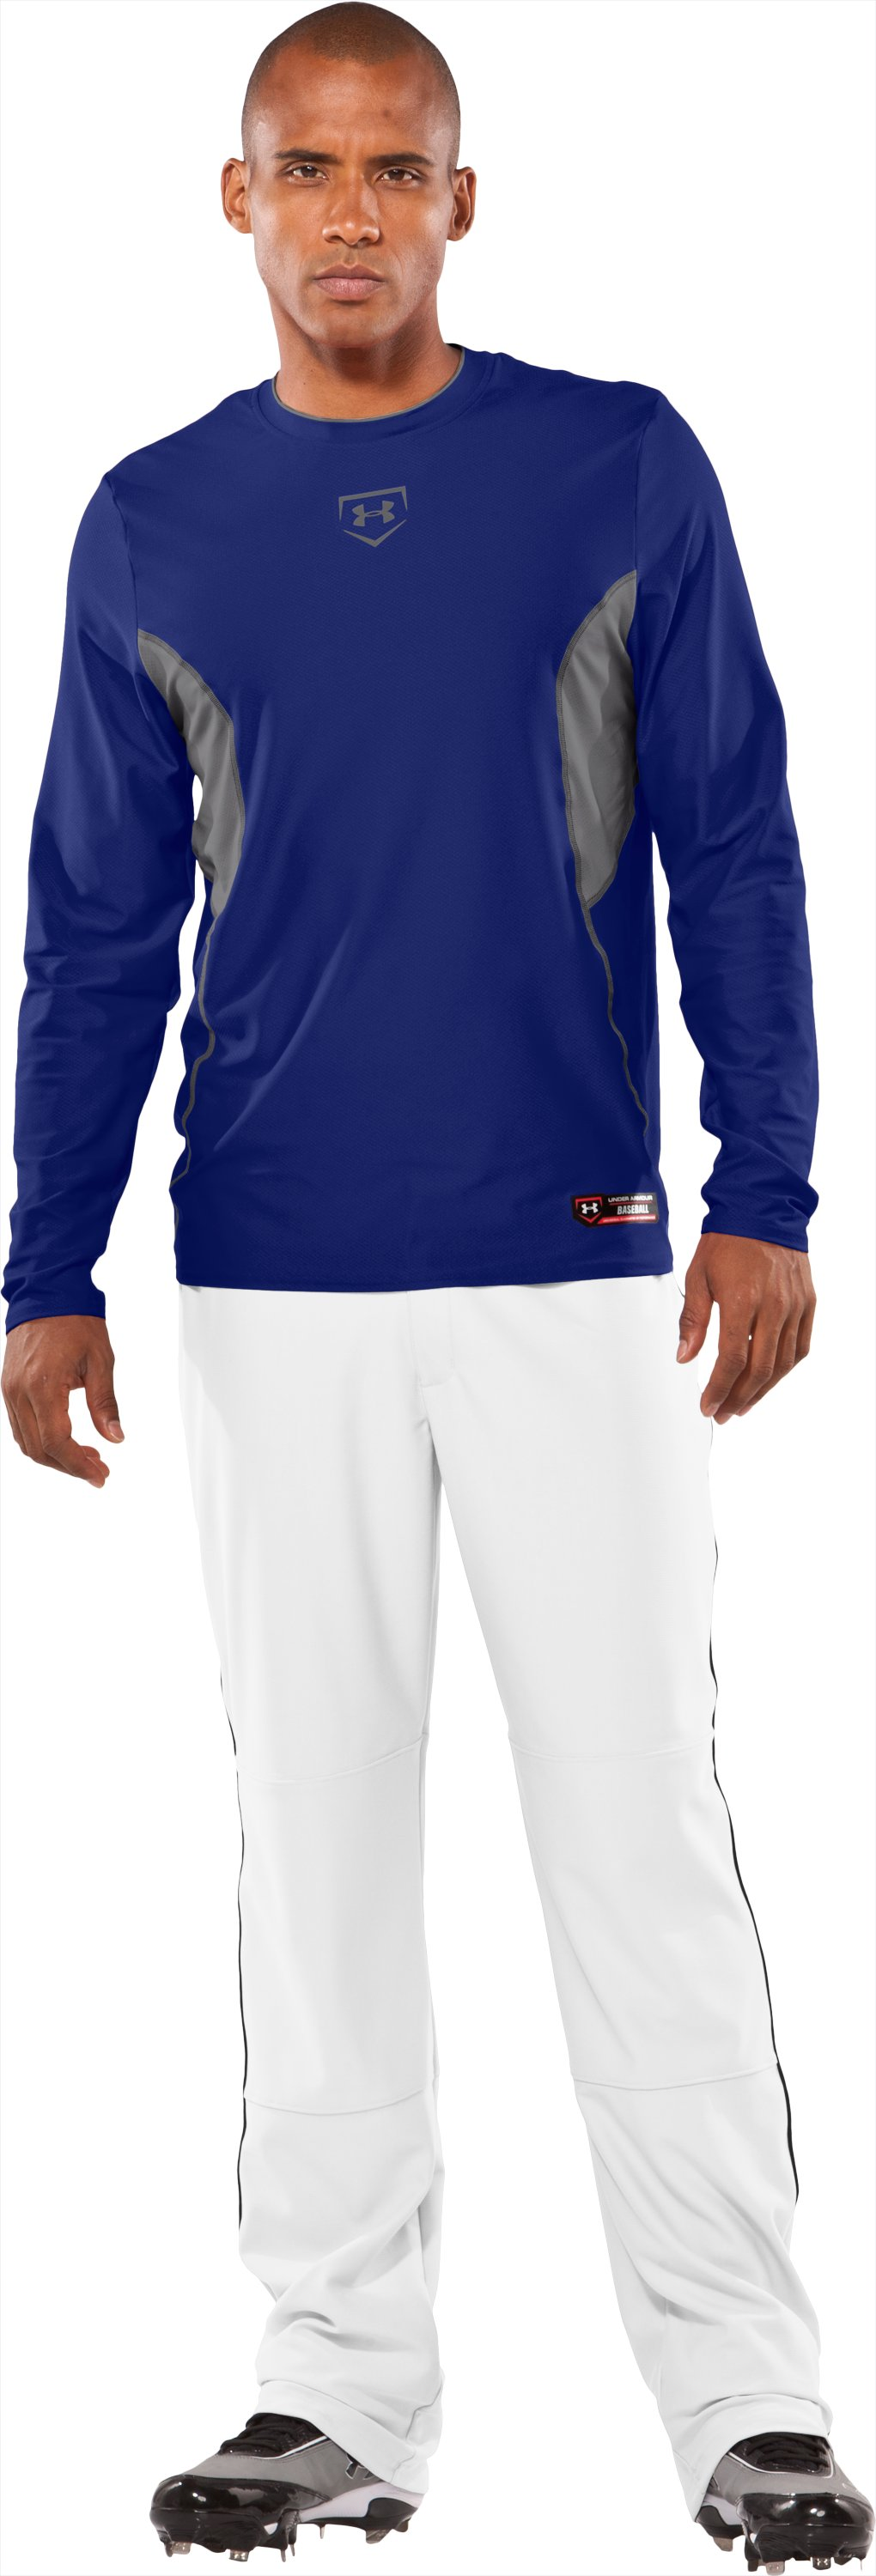 Men's Baseball Gameday Long Sleeve Shirt, Royal, Front